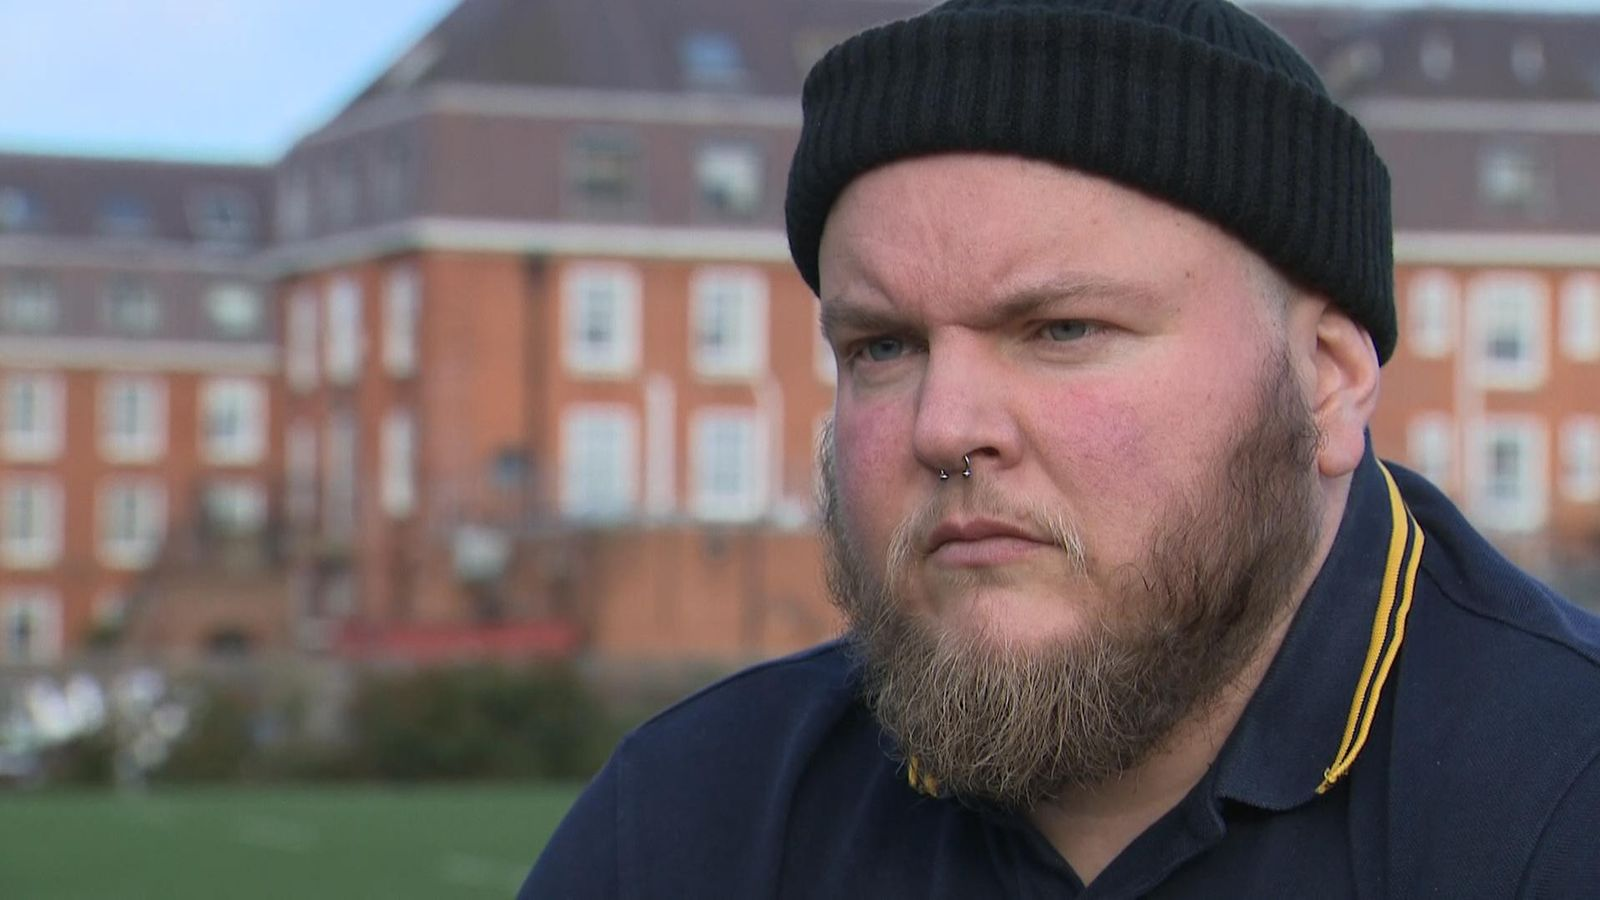 Transgender women in rugby 'do not pose danger to other players', says trans man